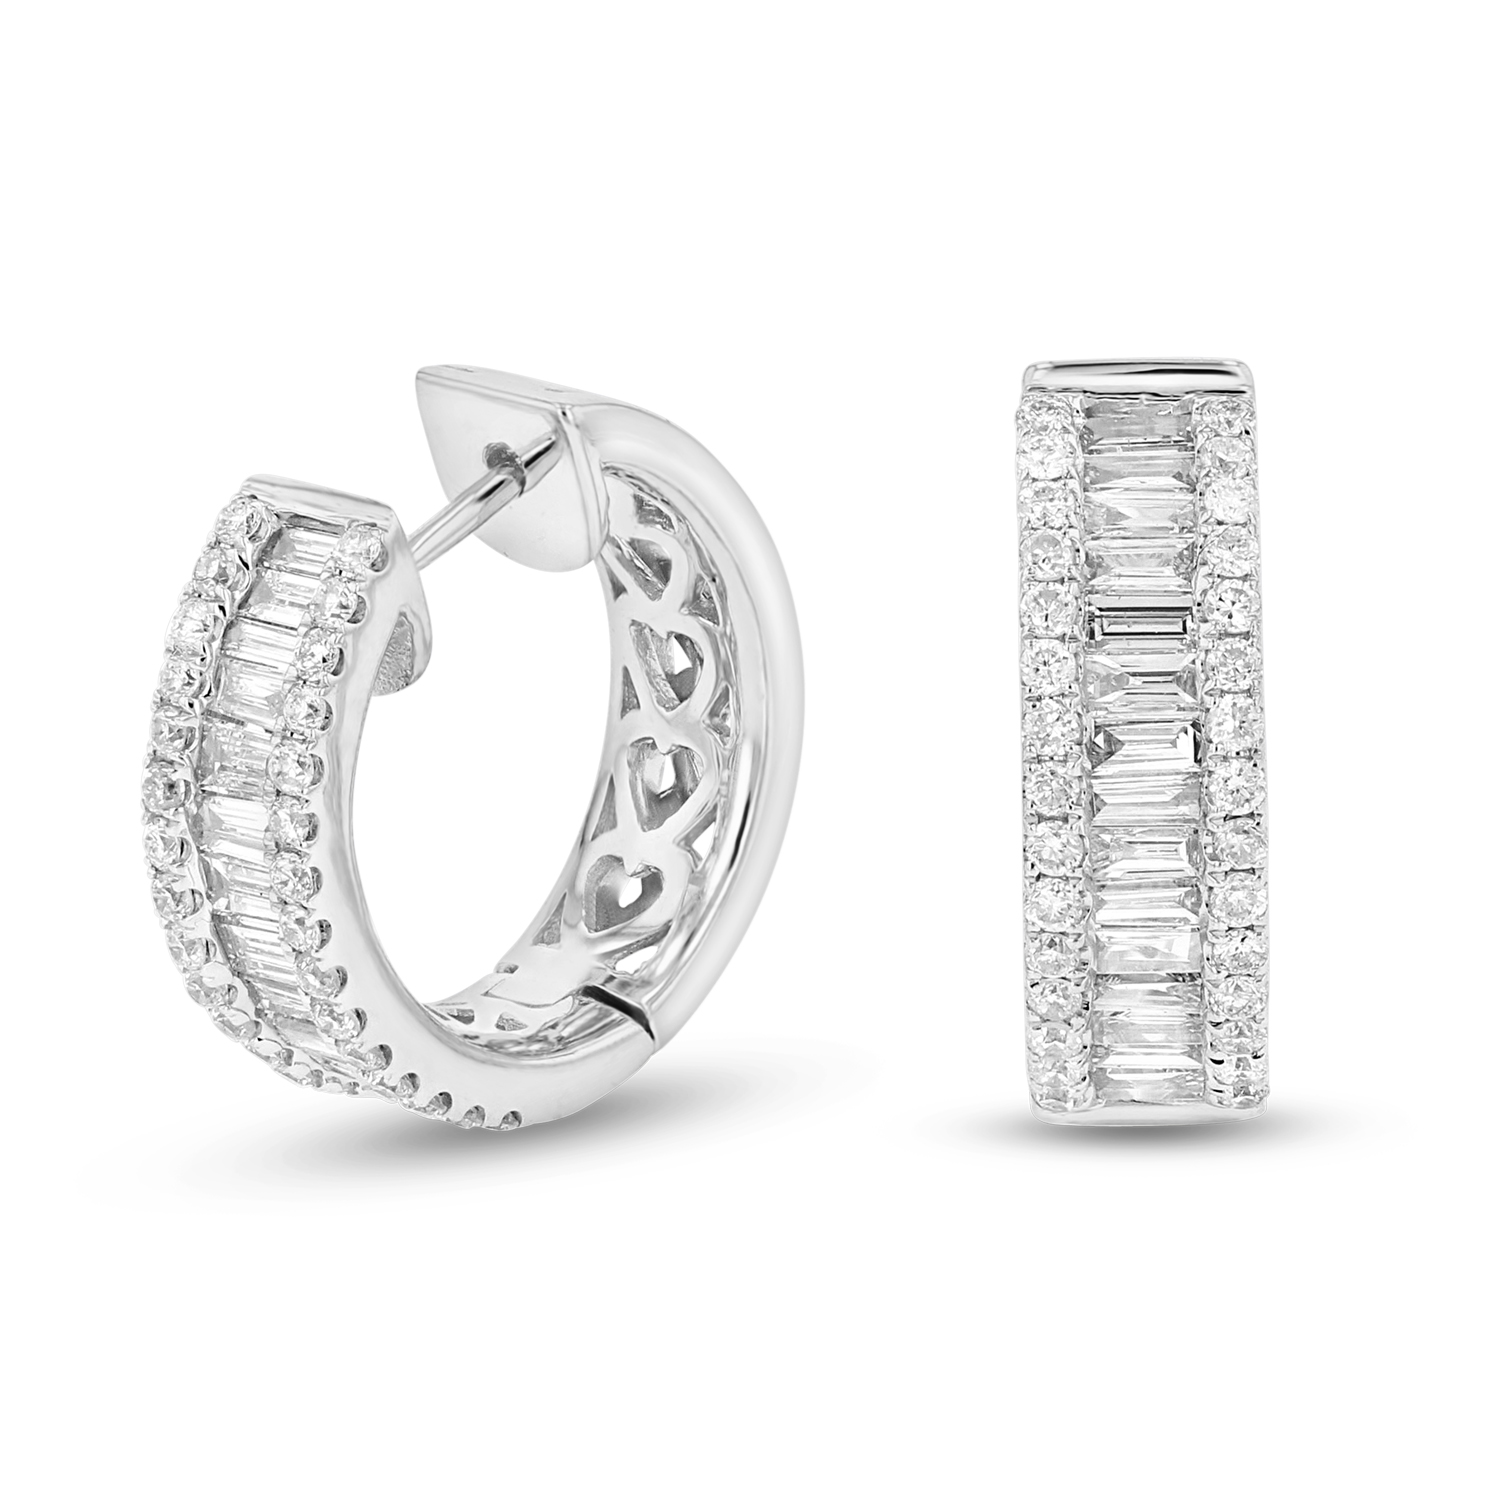 View 0.76ctw Diamond Hoop Earring in 18k White Gold